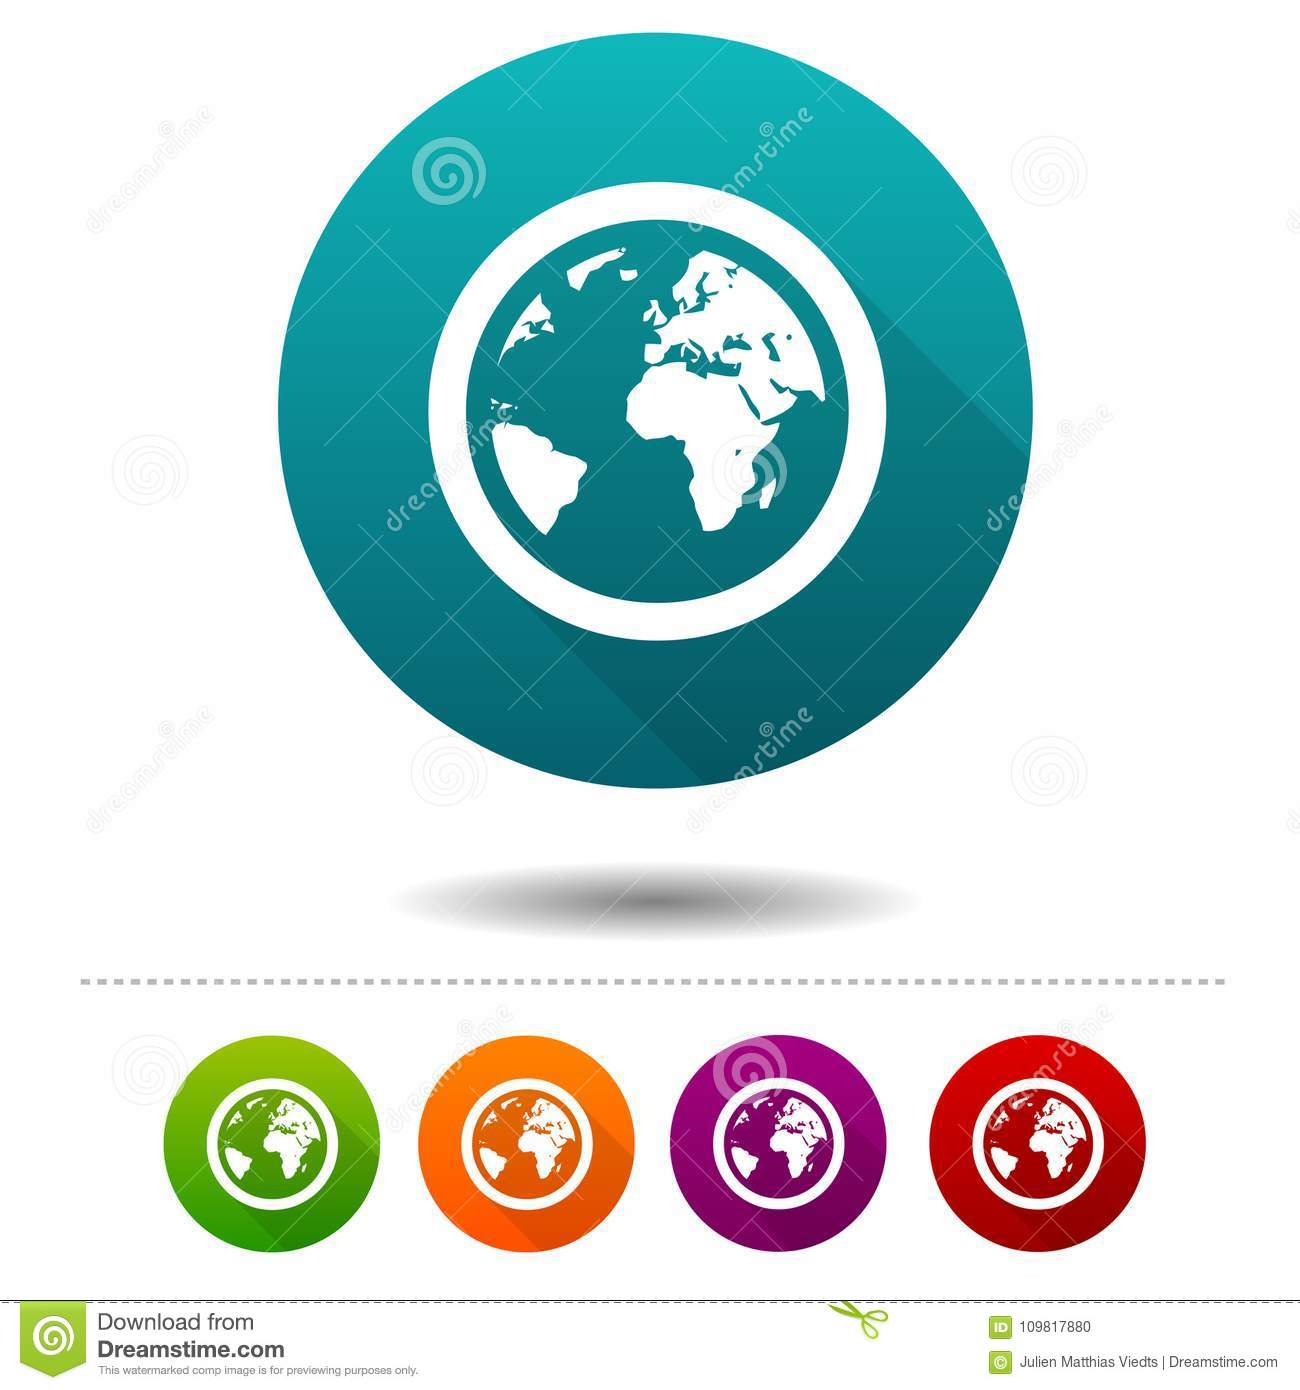 Globe Earth icons. Planet signs. World symbol. Vector Circle web buttons.